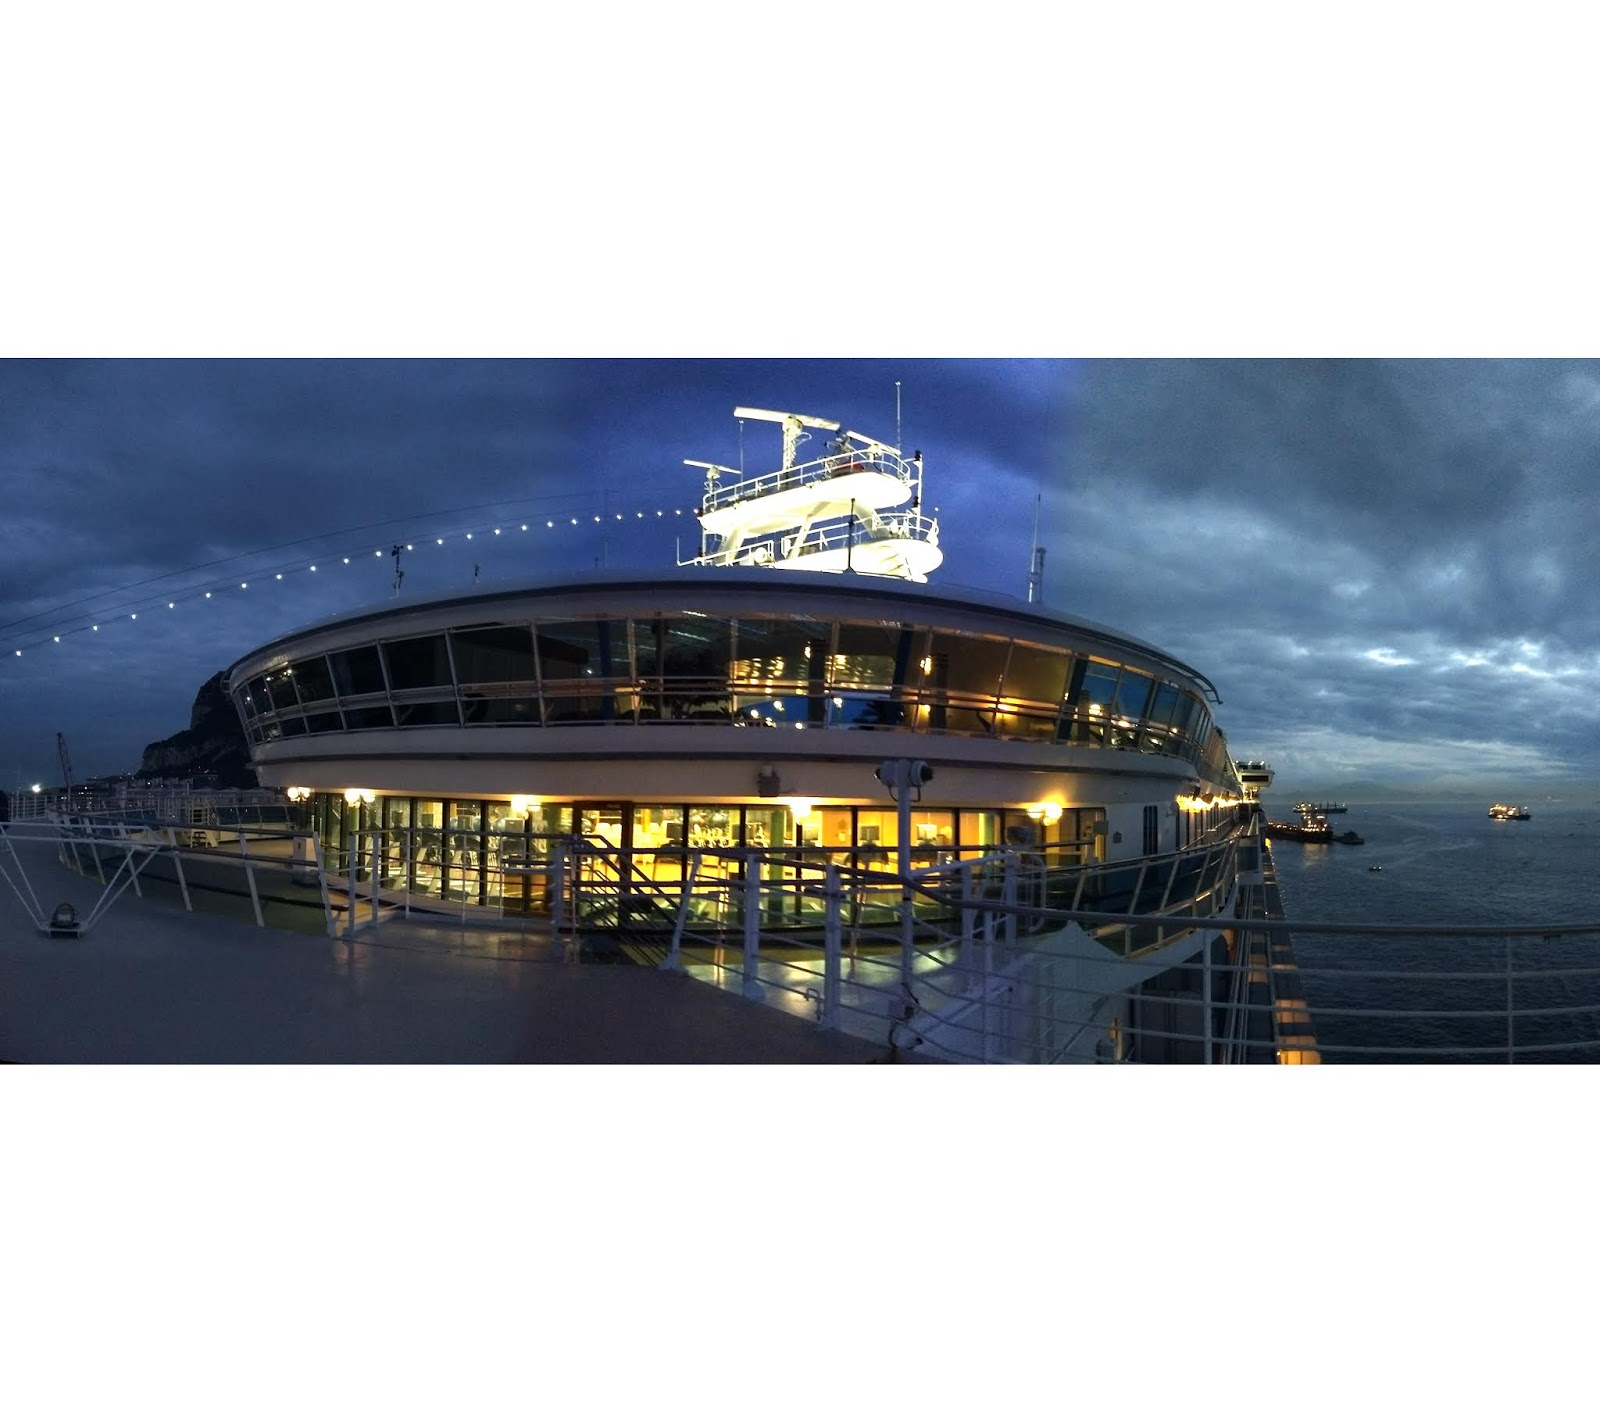 Panoramic view of a lit up gym on a cruise ship at dusk.